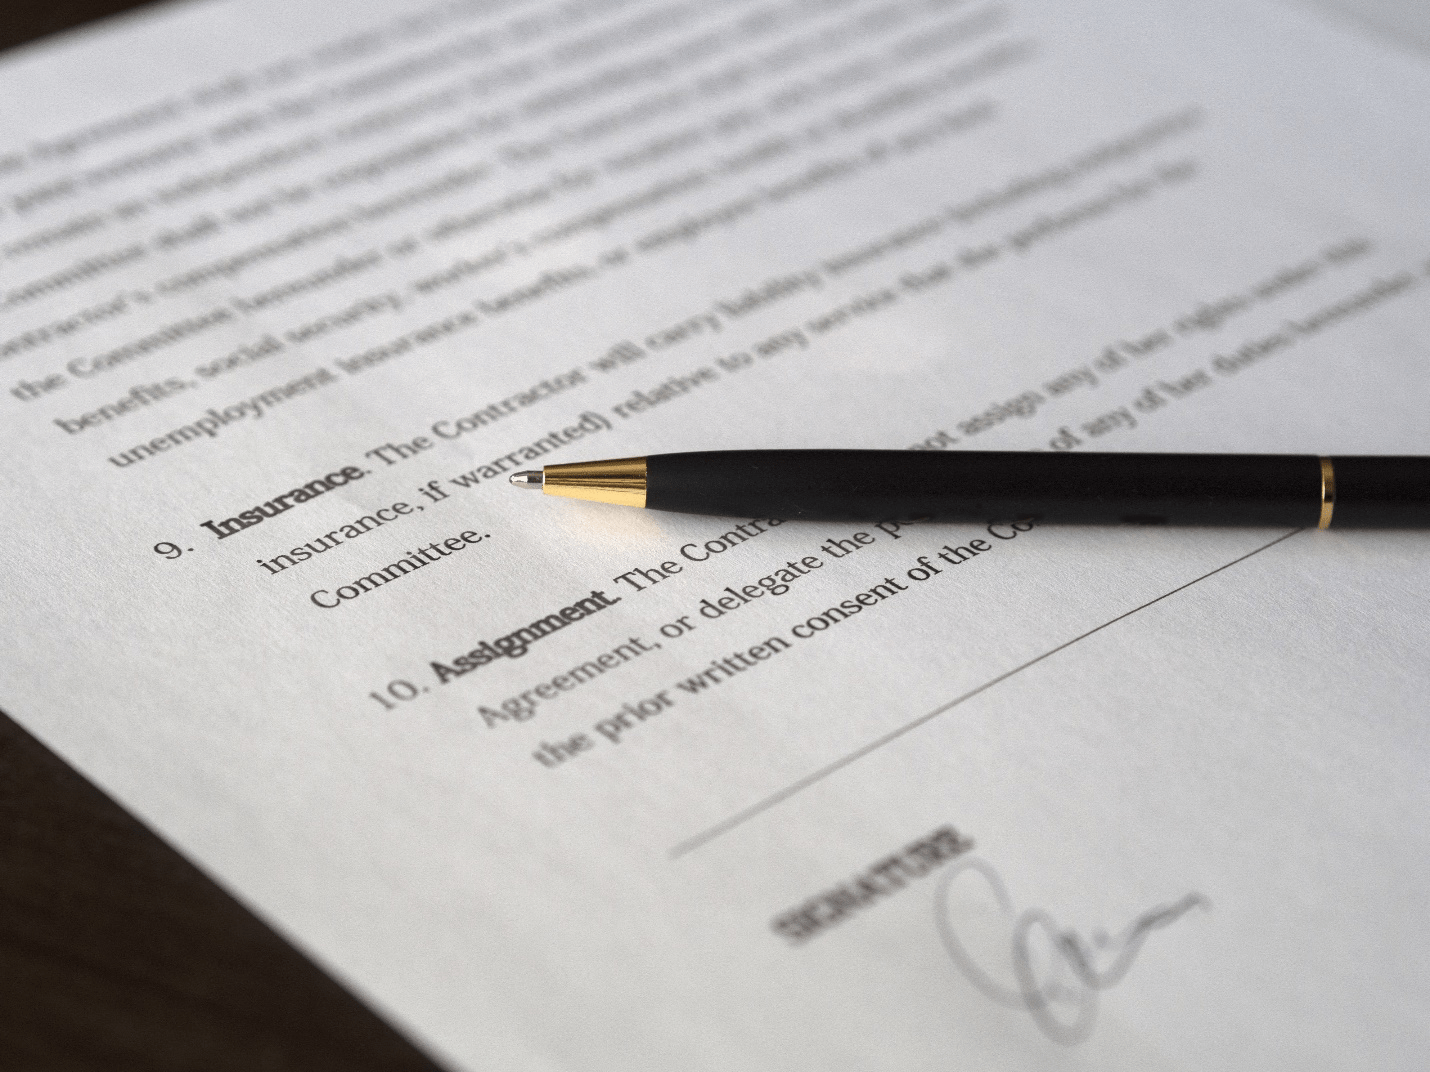 A signed document with a pen